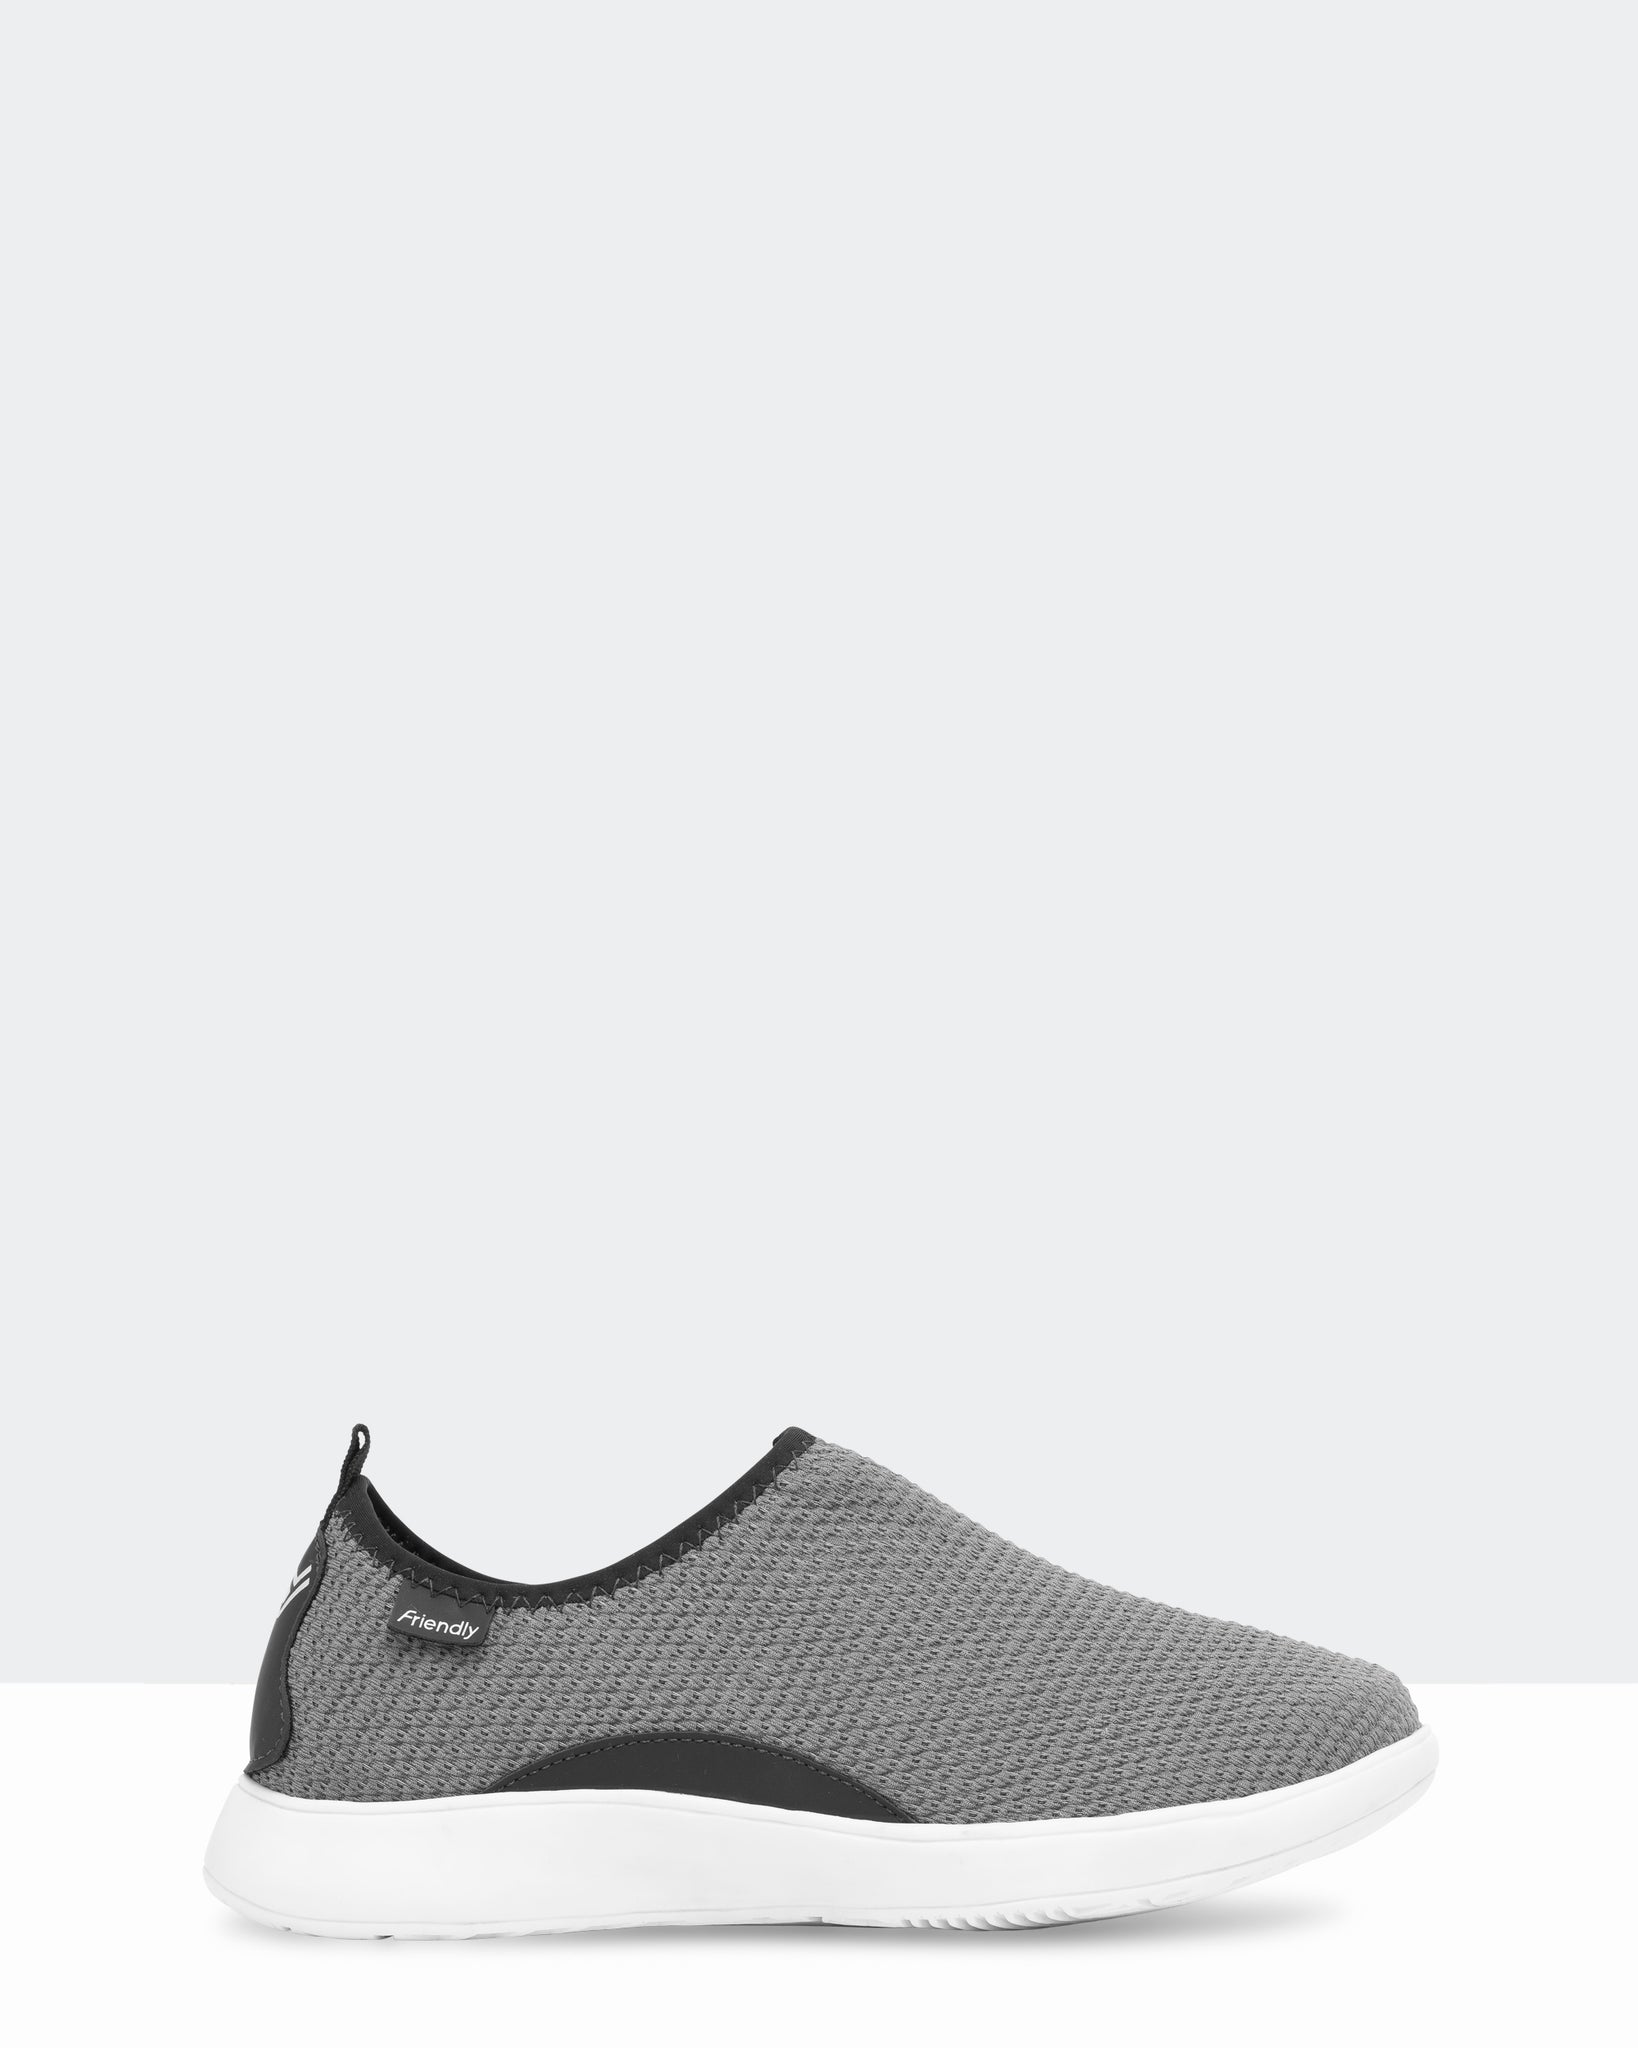 Friendly Flex (Women) - Castlerock Grey